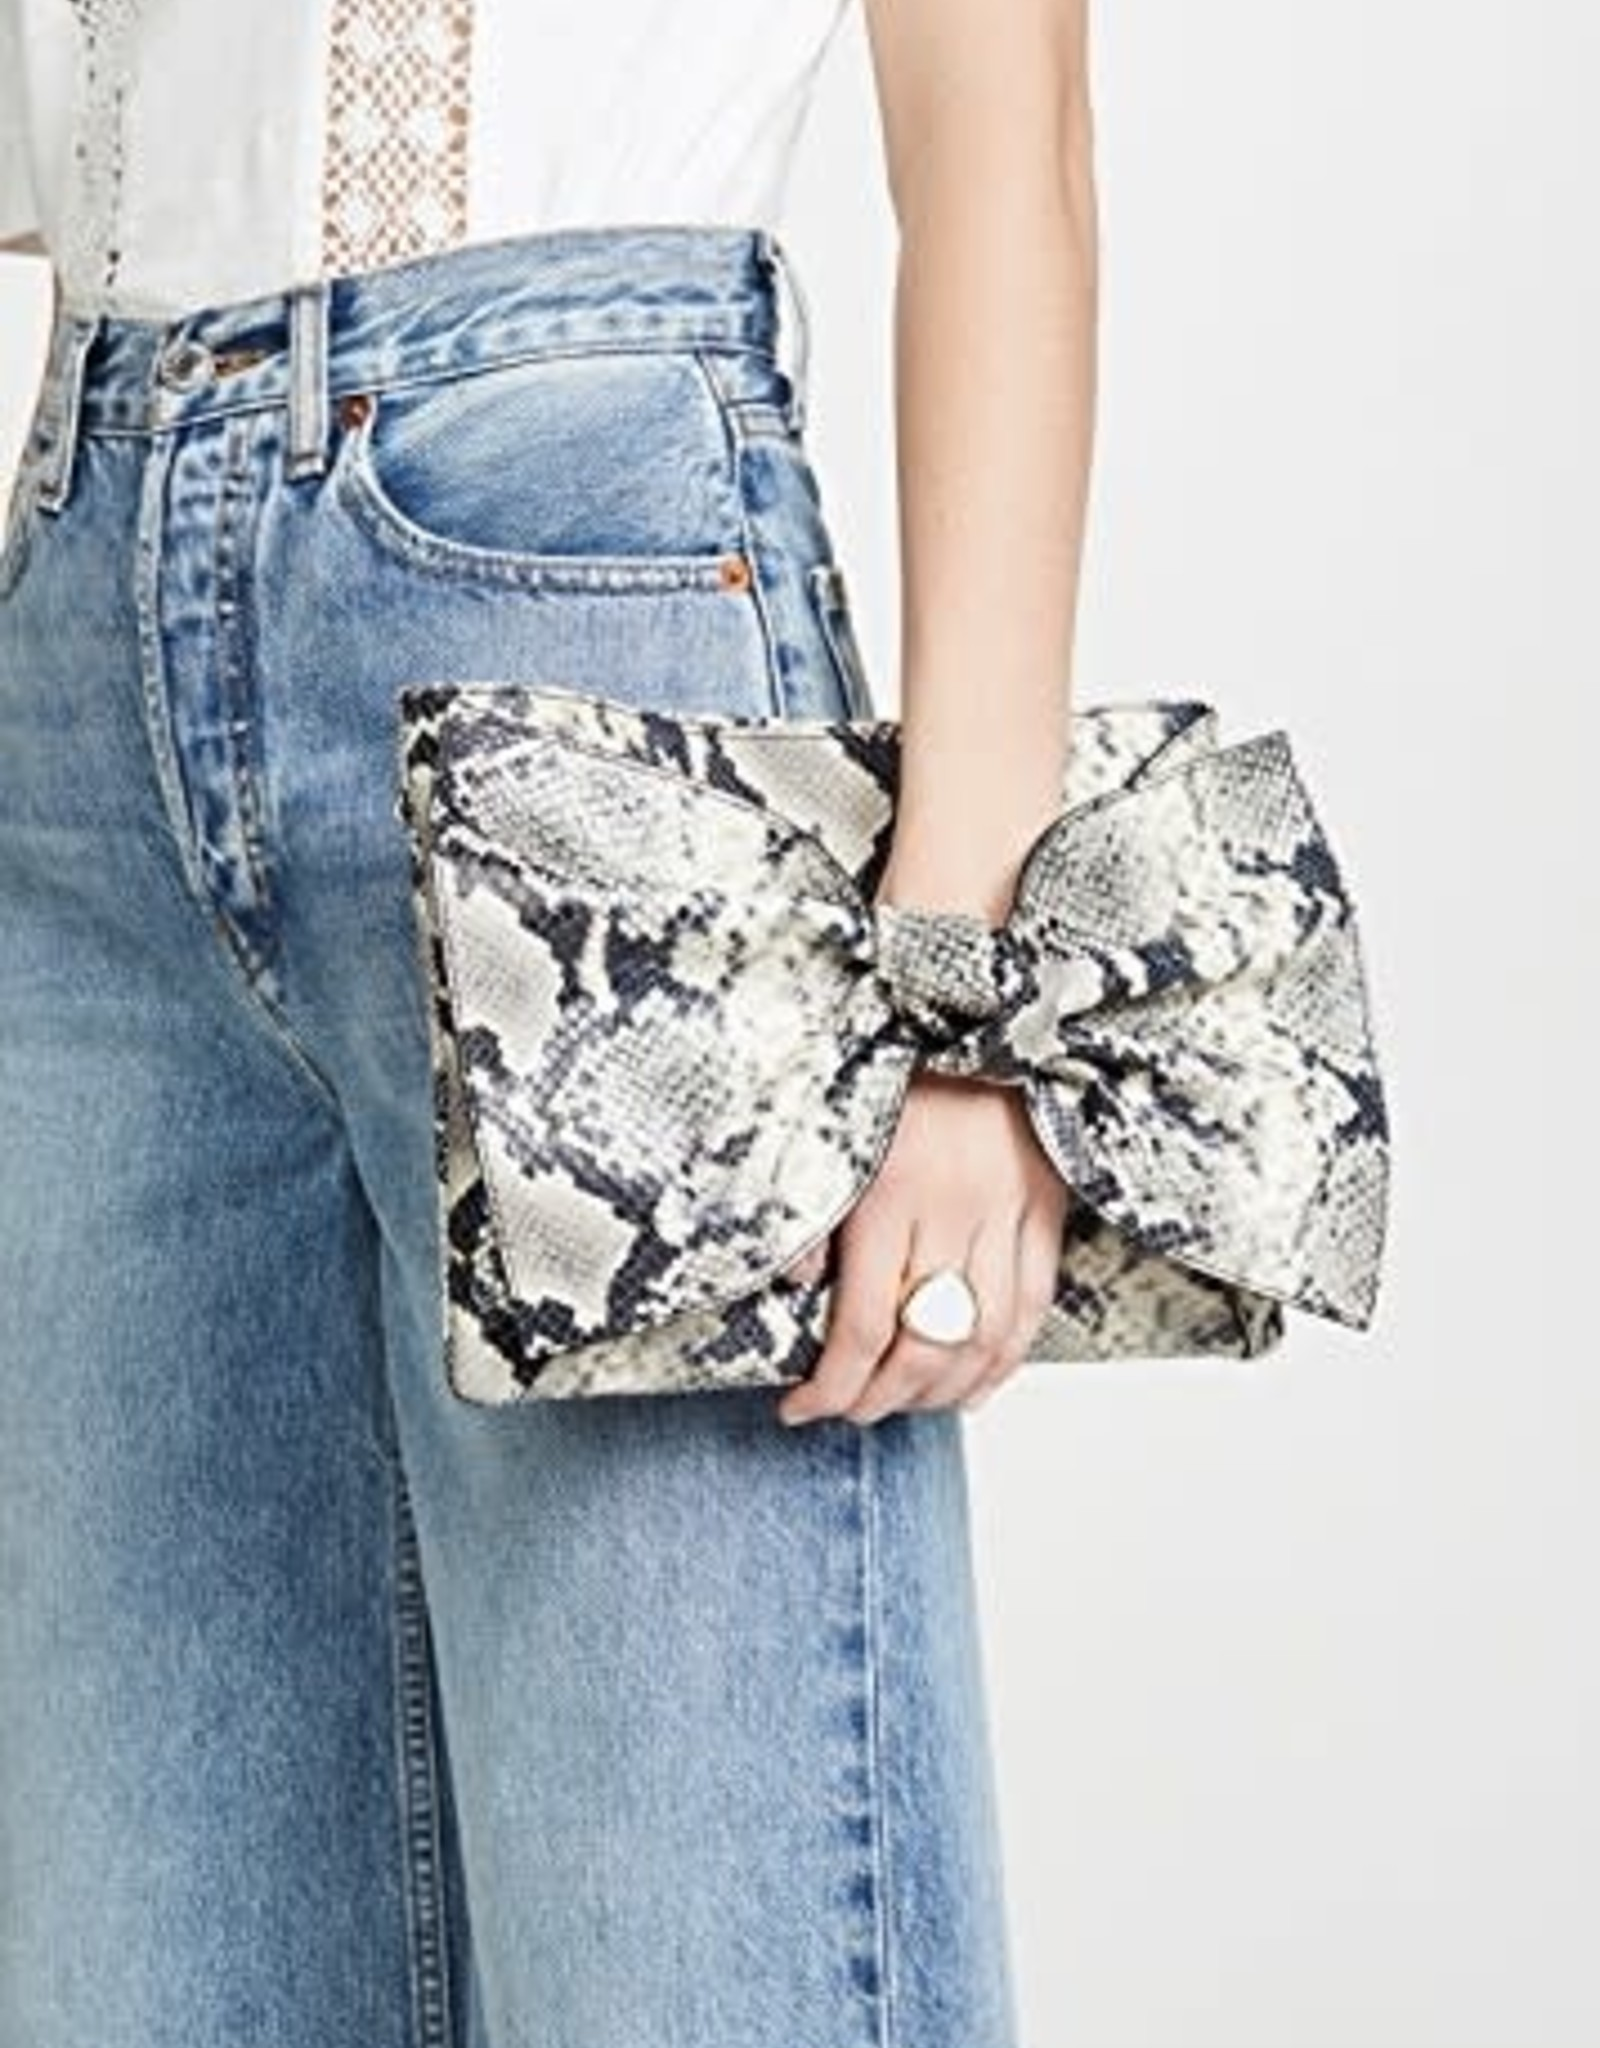 ULLA JOHNSON - The Tali Clutch